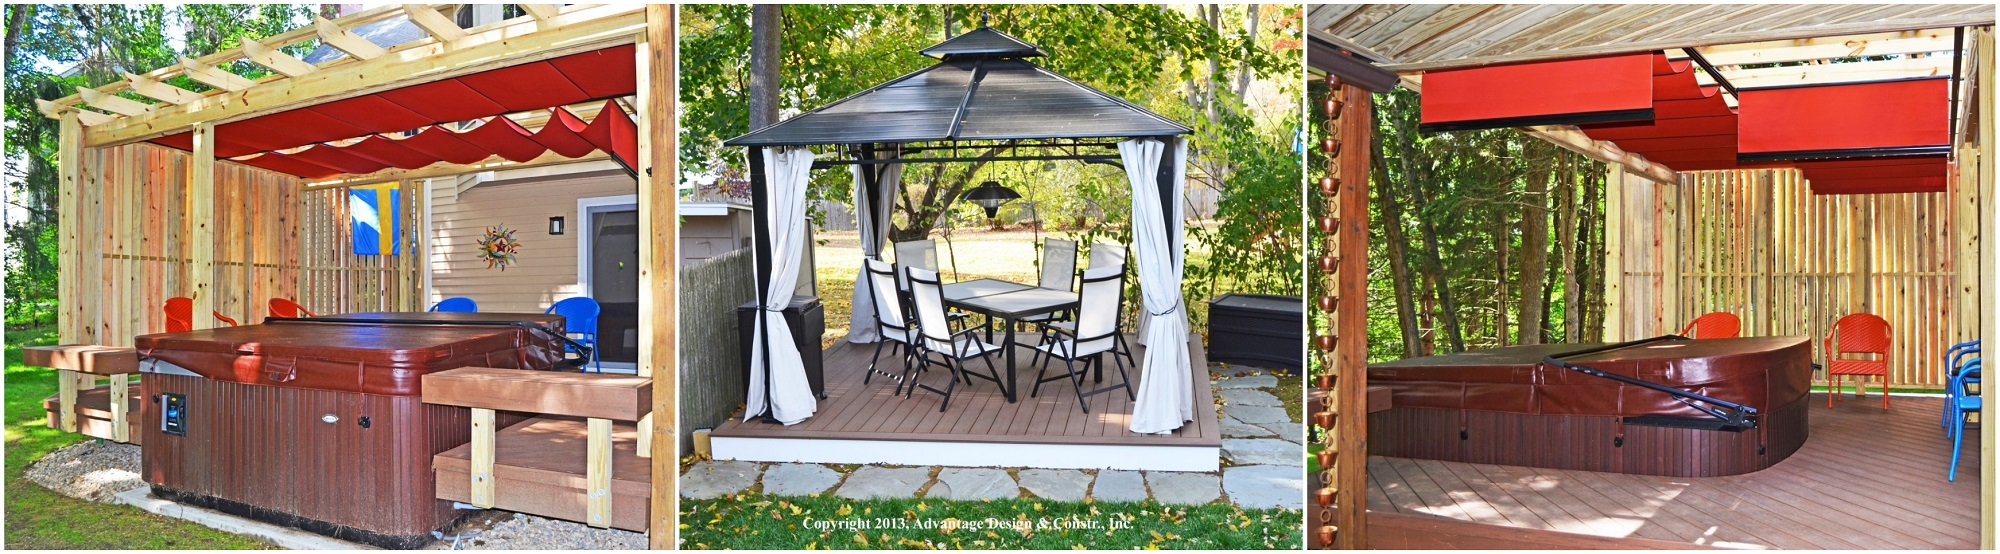 3 images of outdoor patio